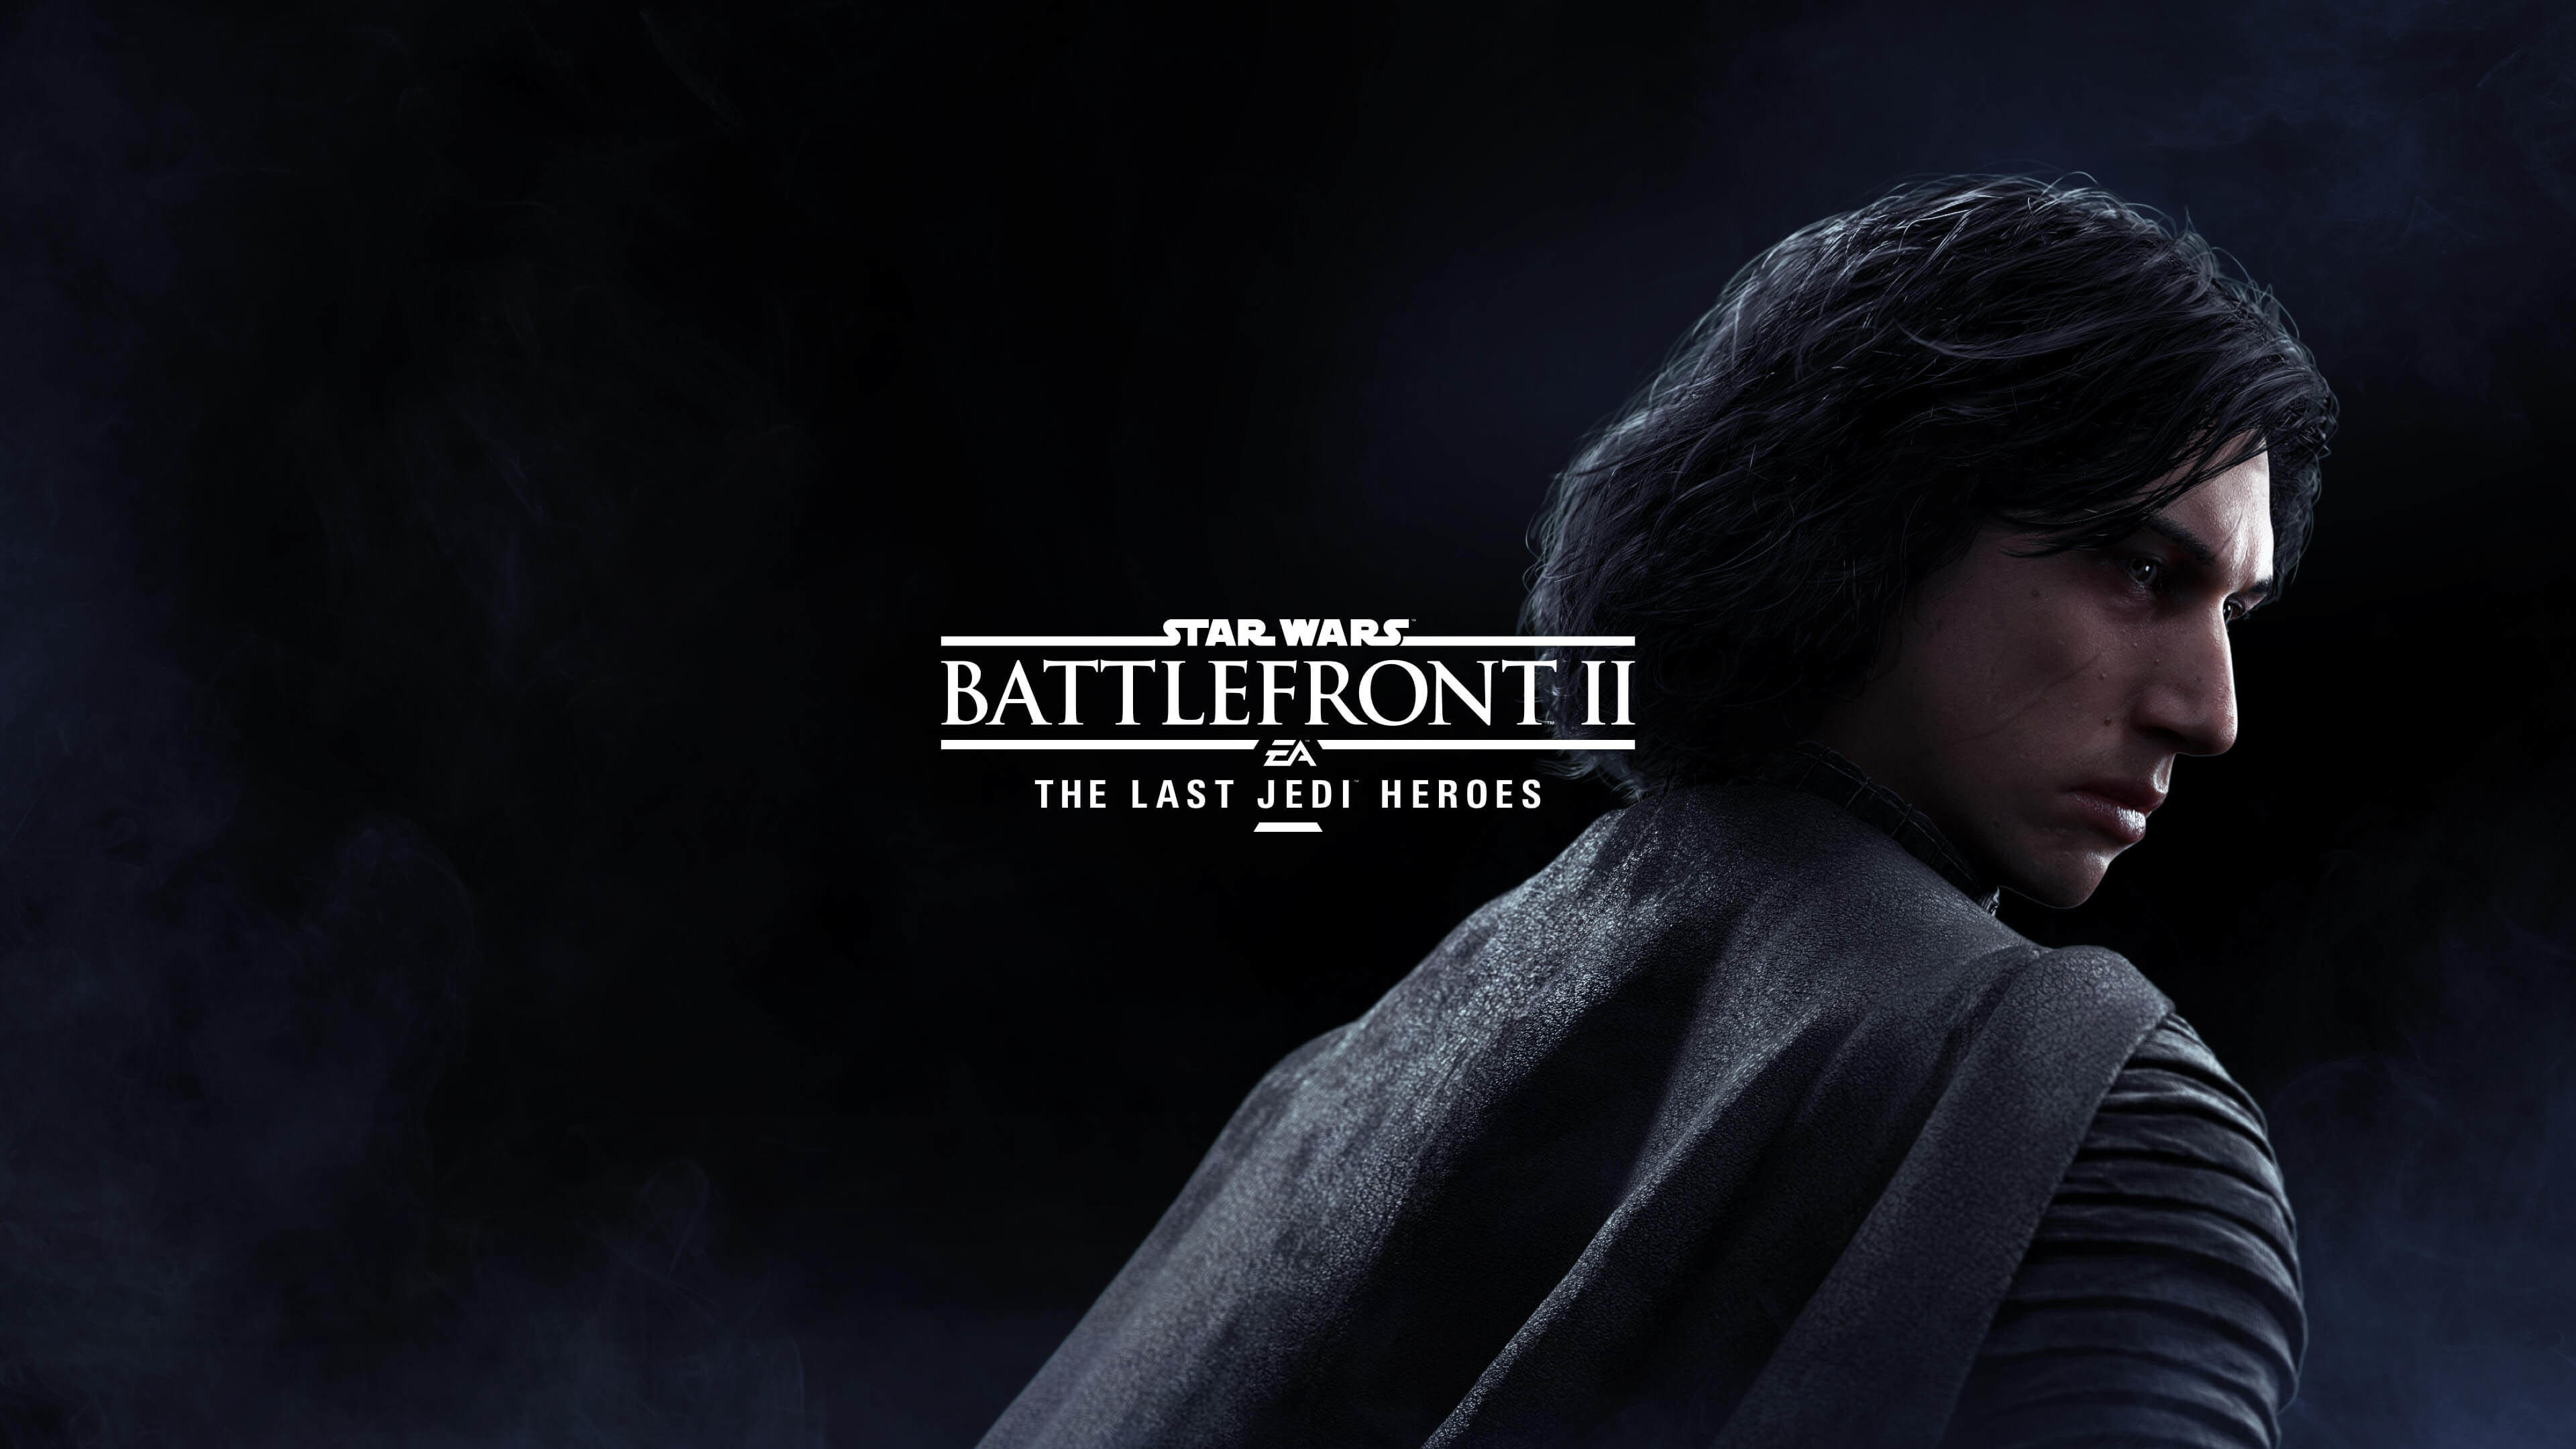 3840x2160 Star Wars: Battlefront II Anakin Skywalker  wallpaper